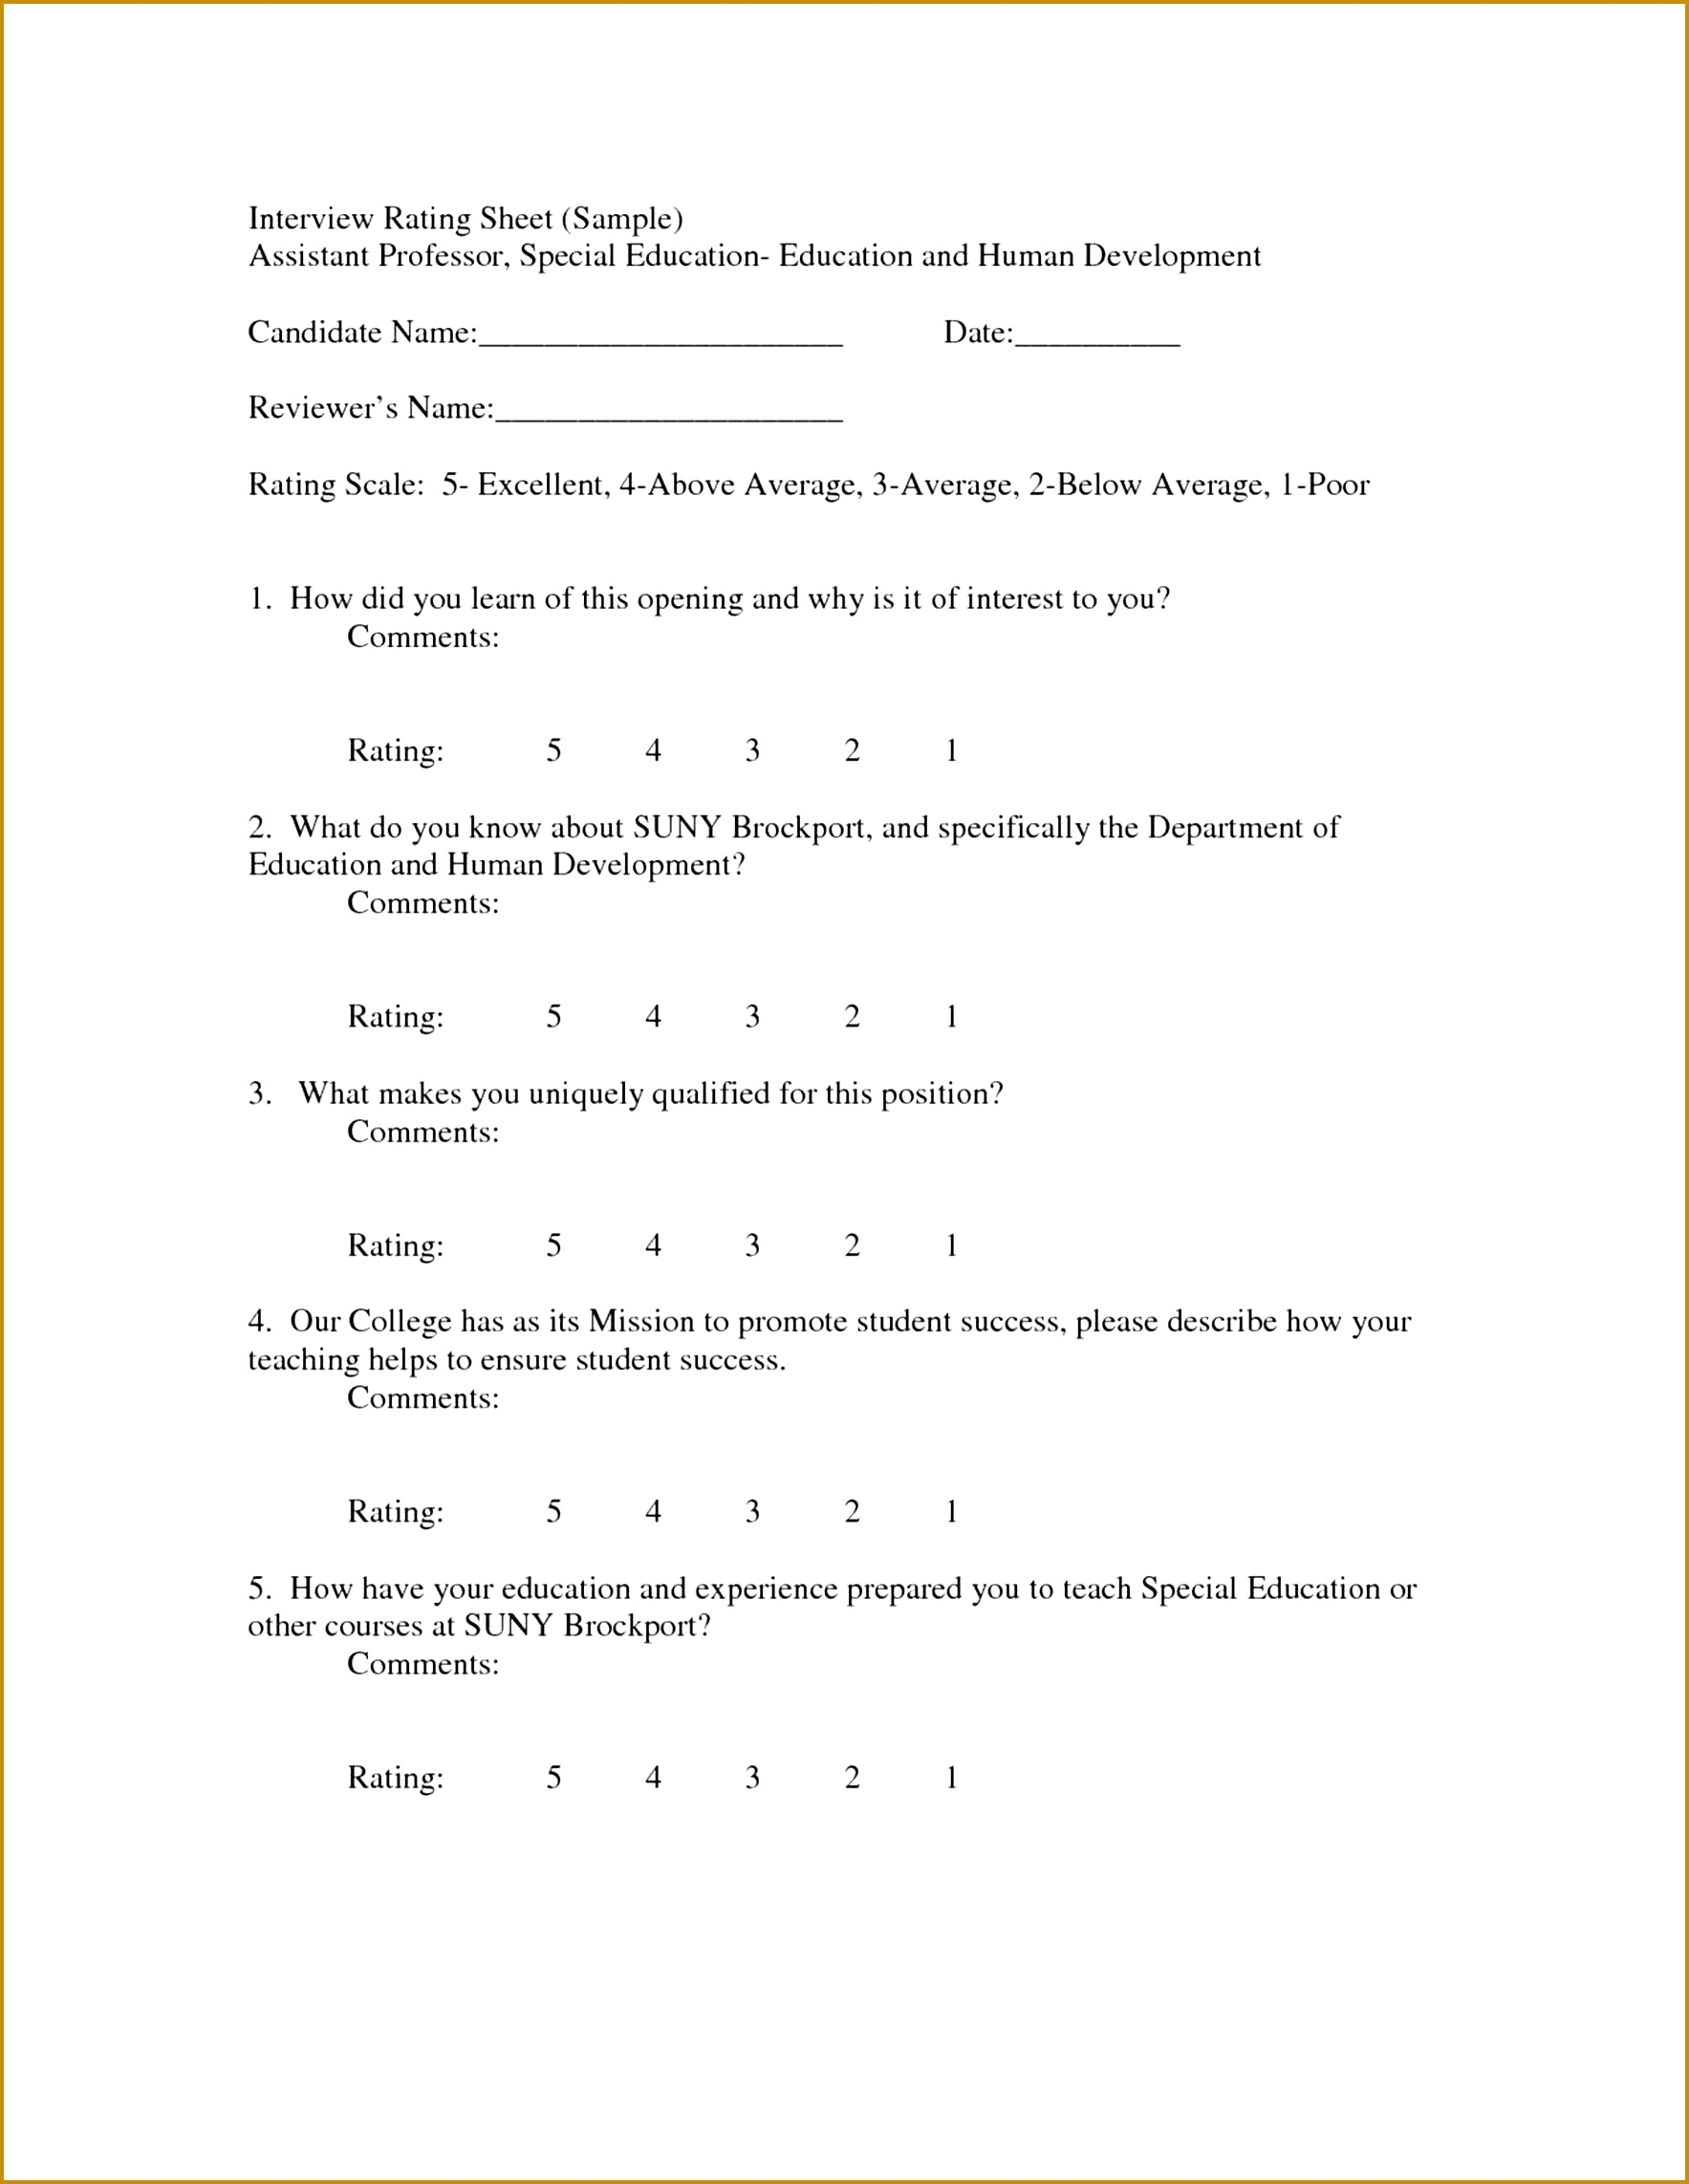 Sheet Template exit interview forms pinterest log sheet template receipt templates log Interview Sheet Template sheet 17672285